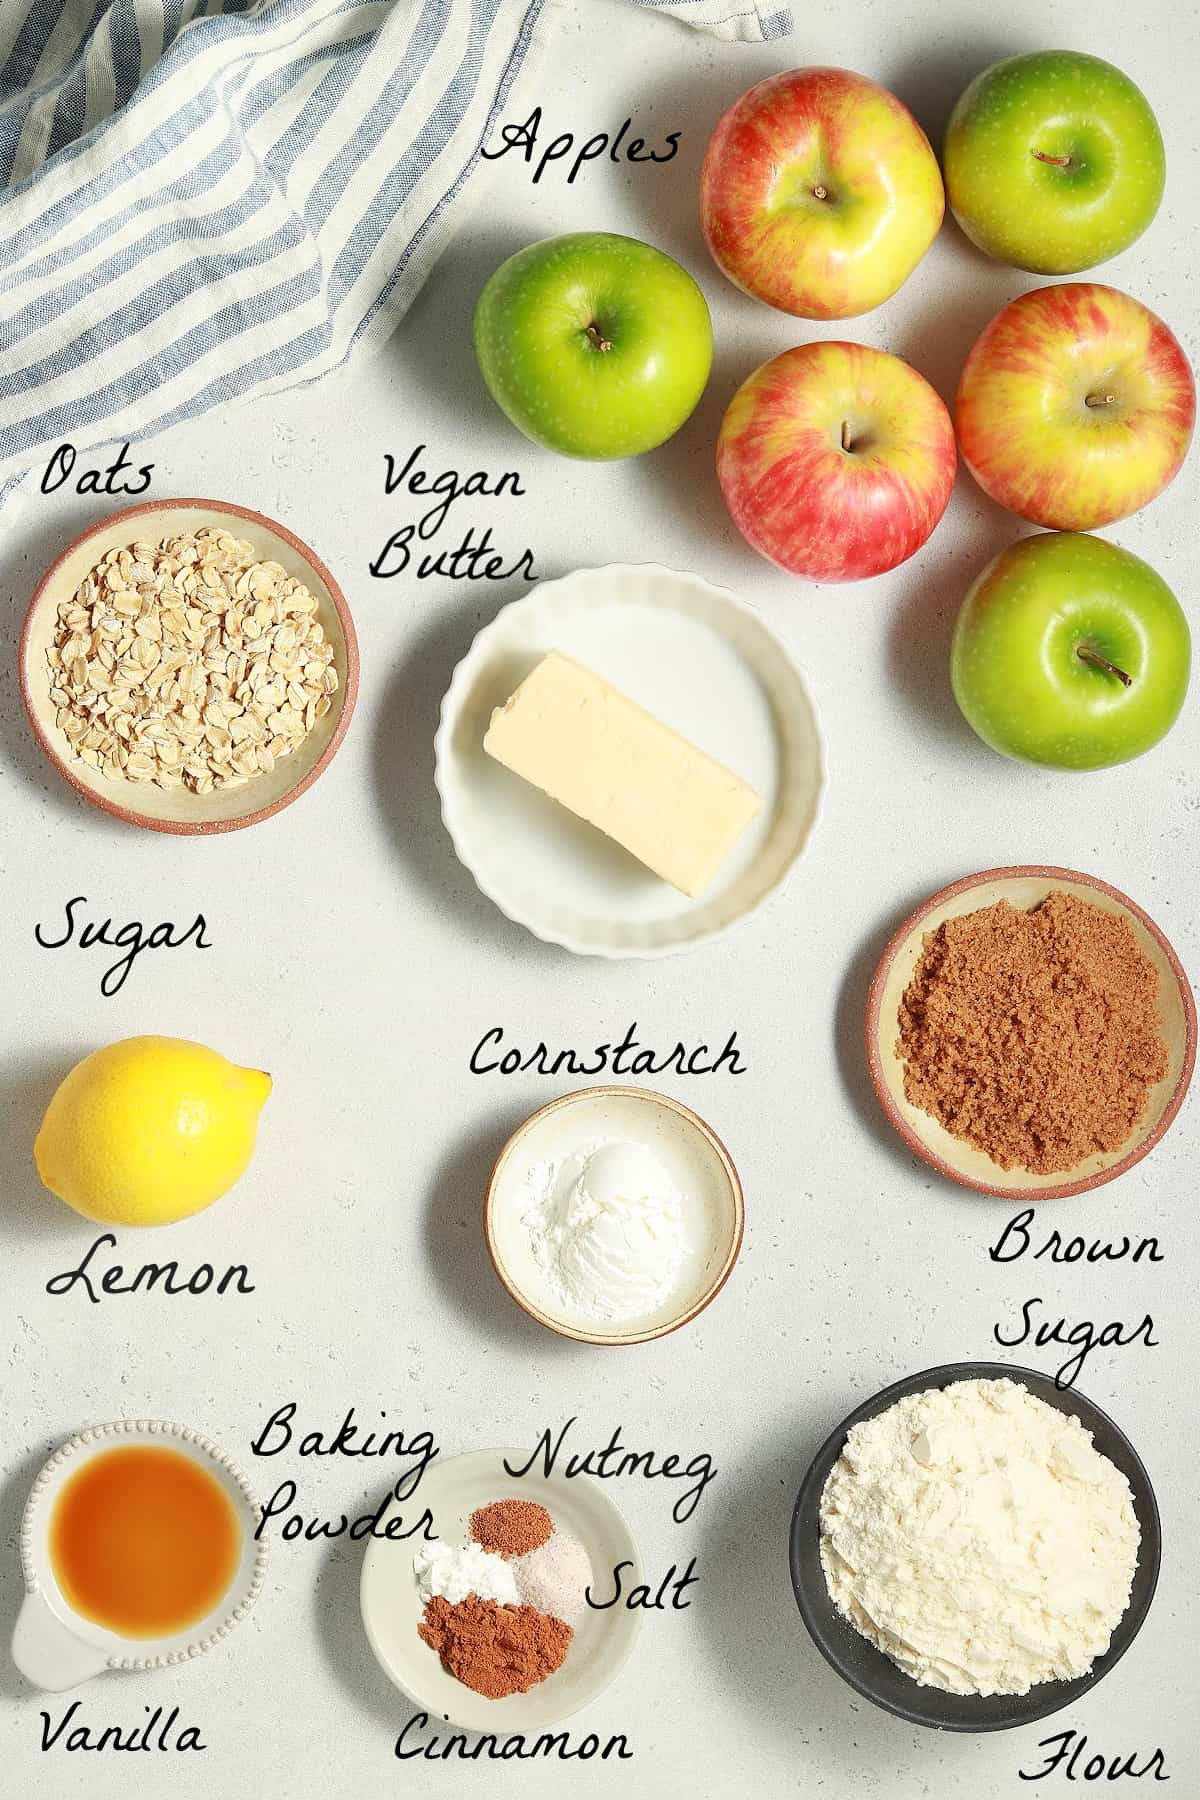 All ingredients to make the apple crisp on a stone table top.